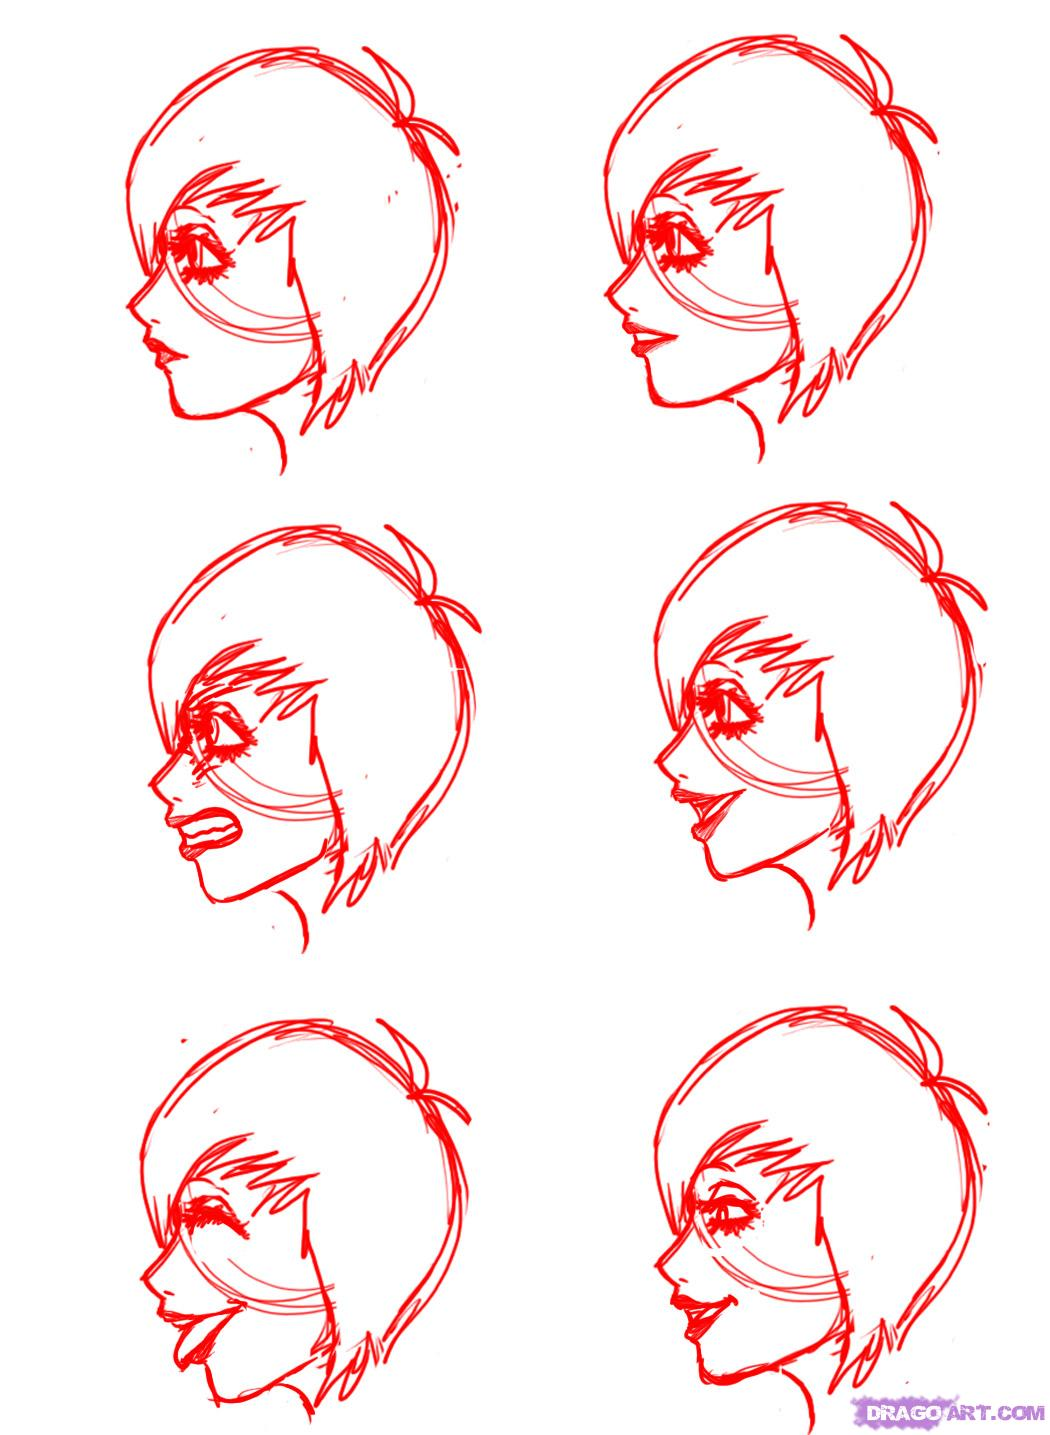 Drawn profile cartoon side Mouths How faces Mouths Profile